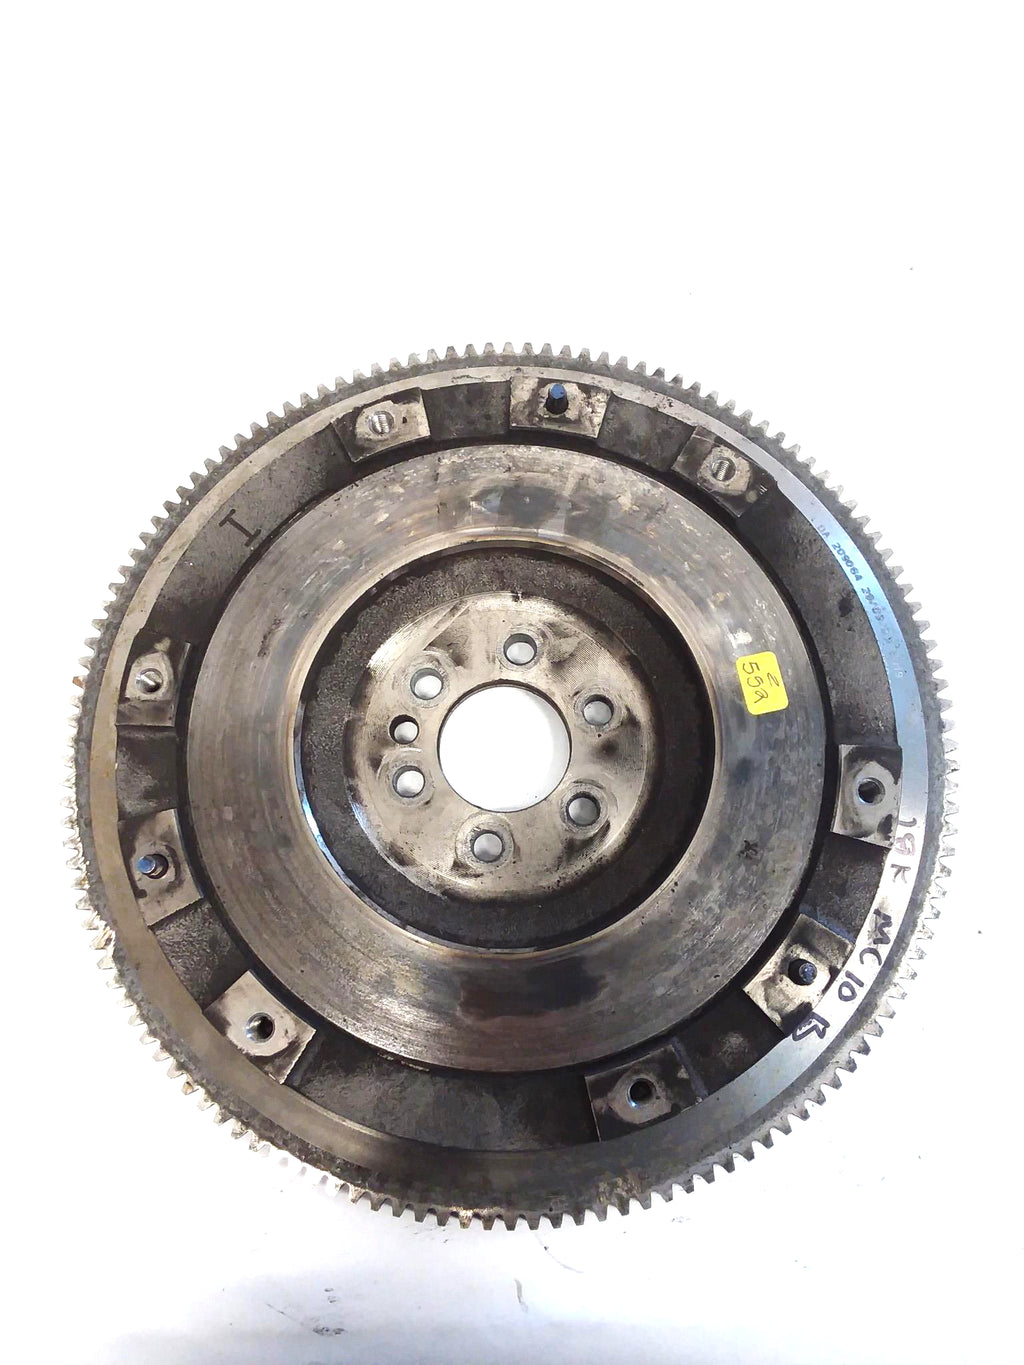 2007 - 2016 MINI COOPER BASE R55 R56 R57 R58 R59 R60 R61 FLYWHEEL MANUAL 7561765